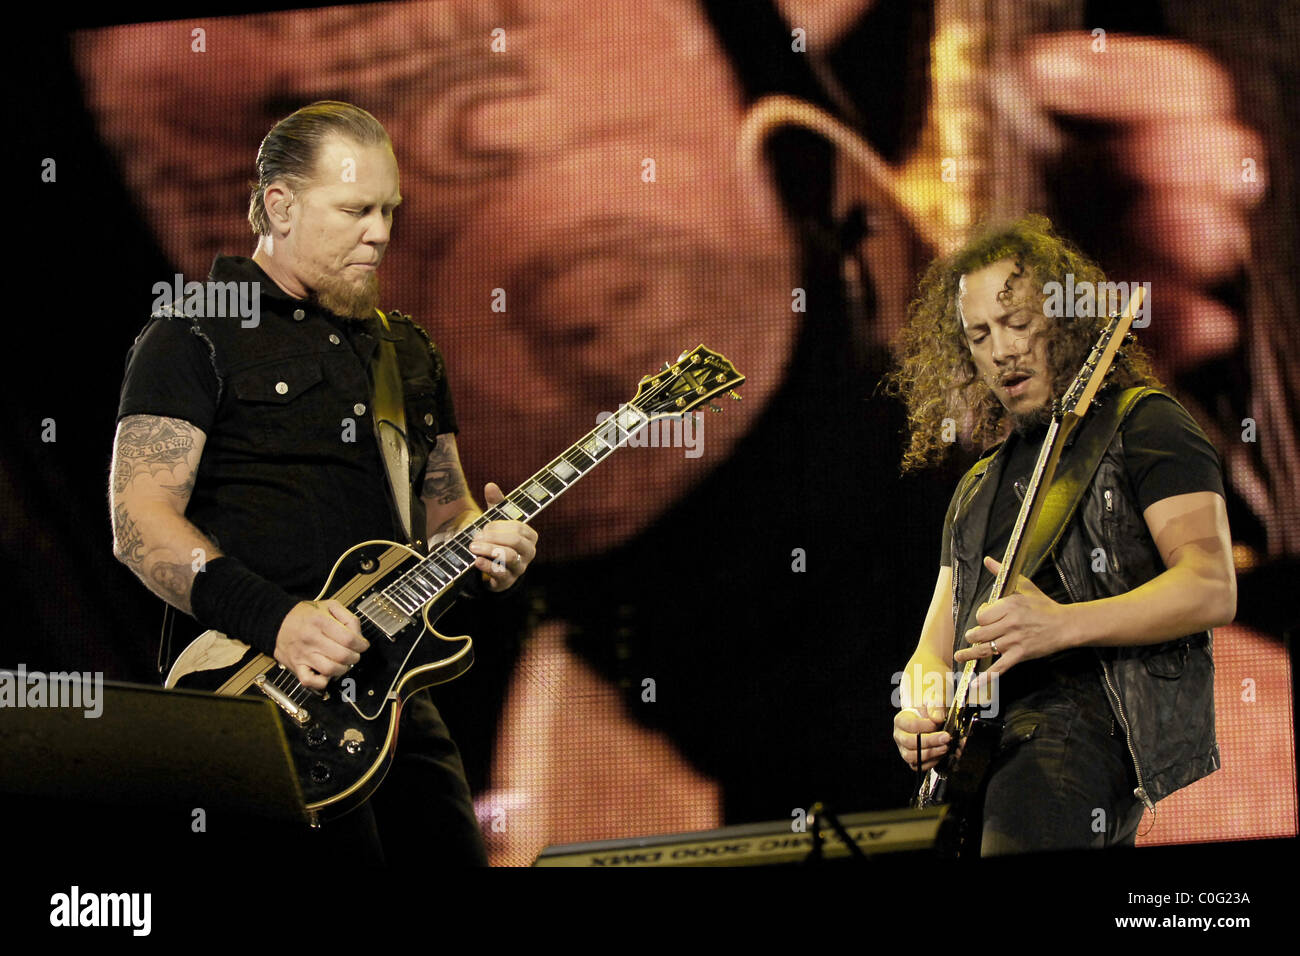 Metalica Stock Photos Images Alamy Kirk Hammett Wiring Diagram James Hetfield And Of Metallica Performing Live On The First Leg Their 2008